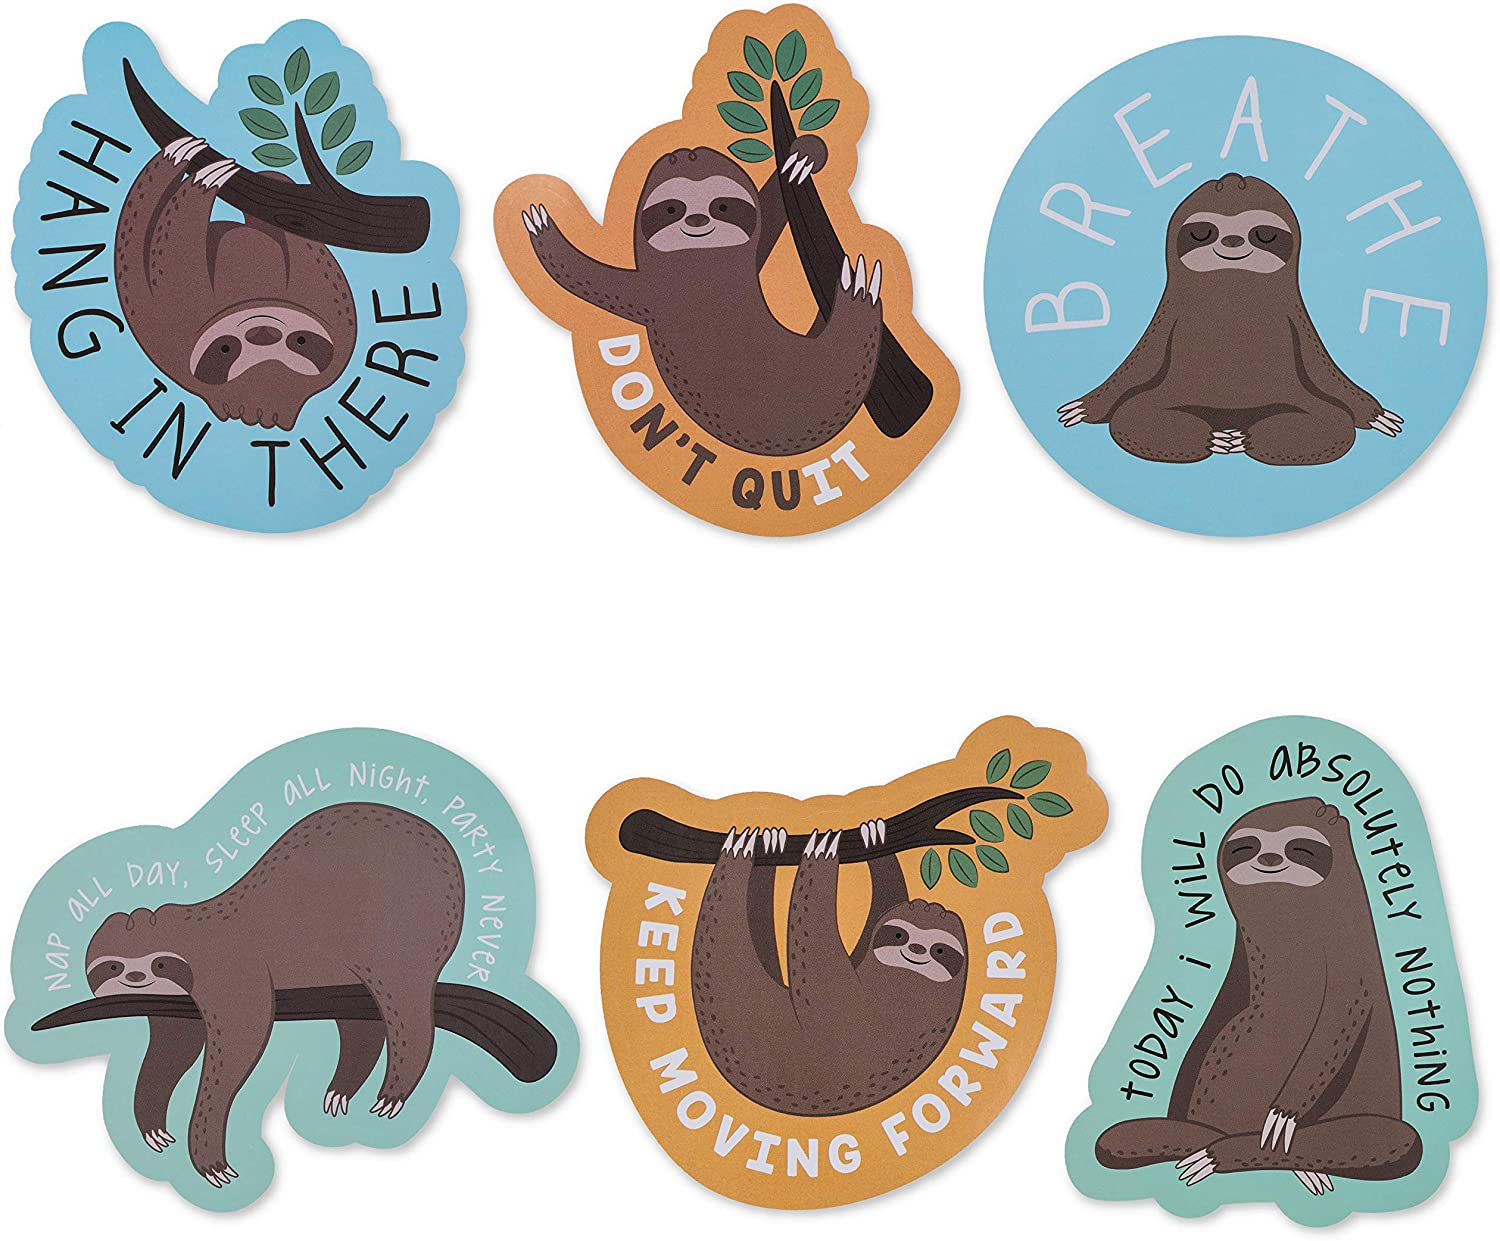 sloth-gifts-stickers